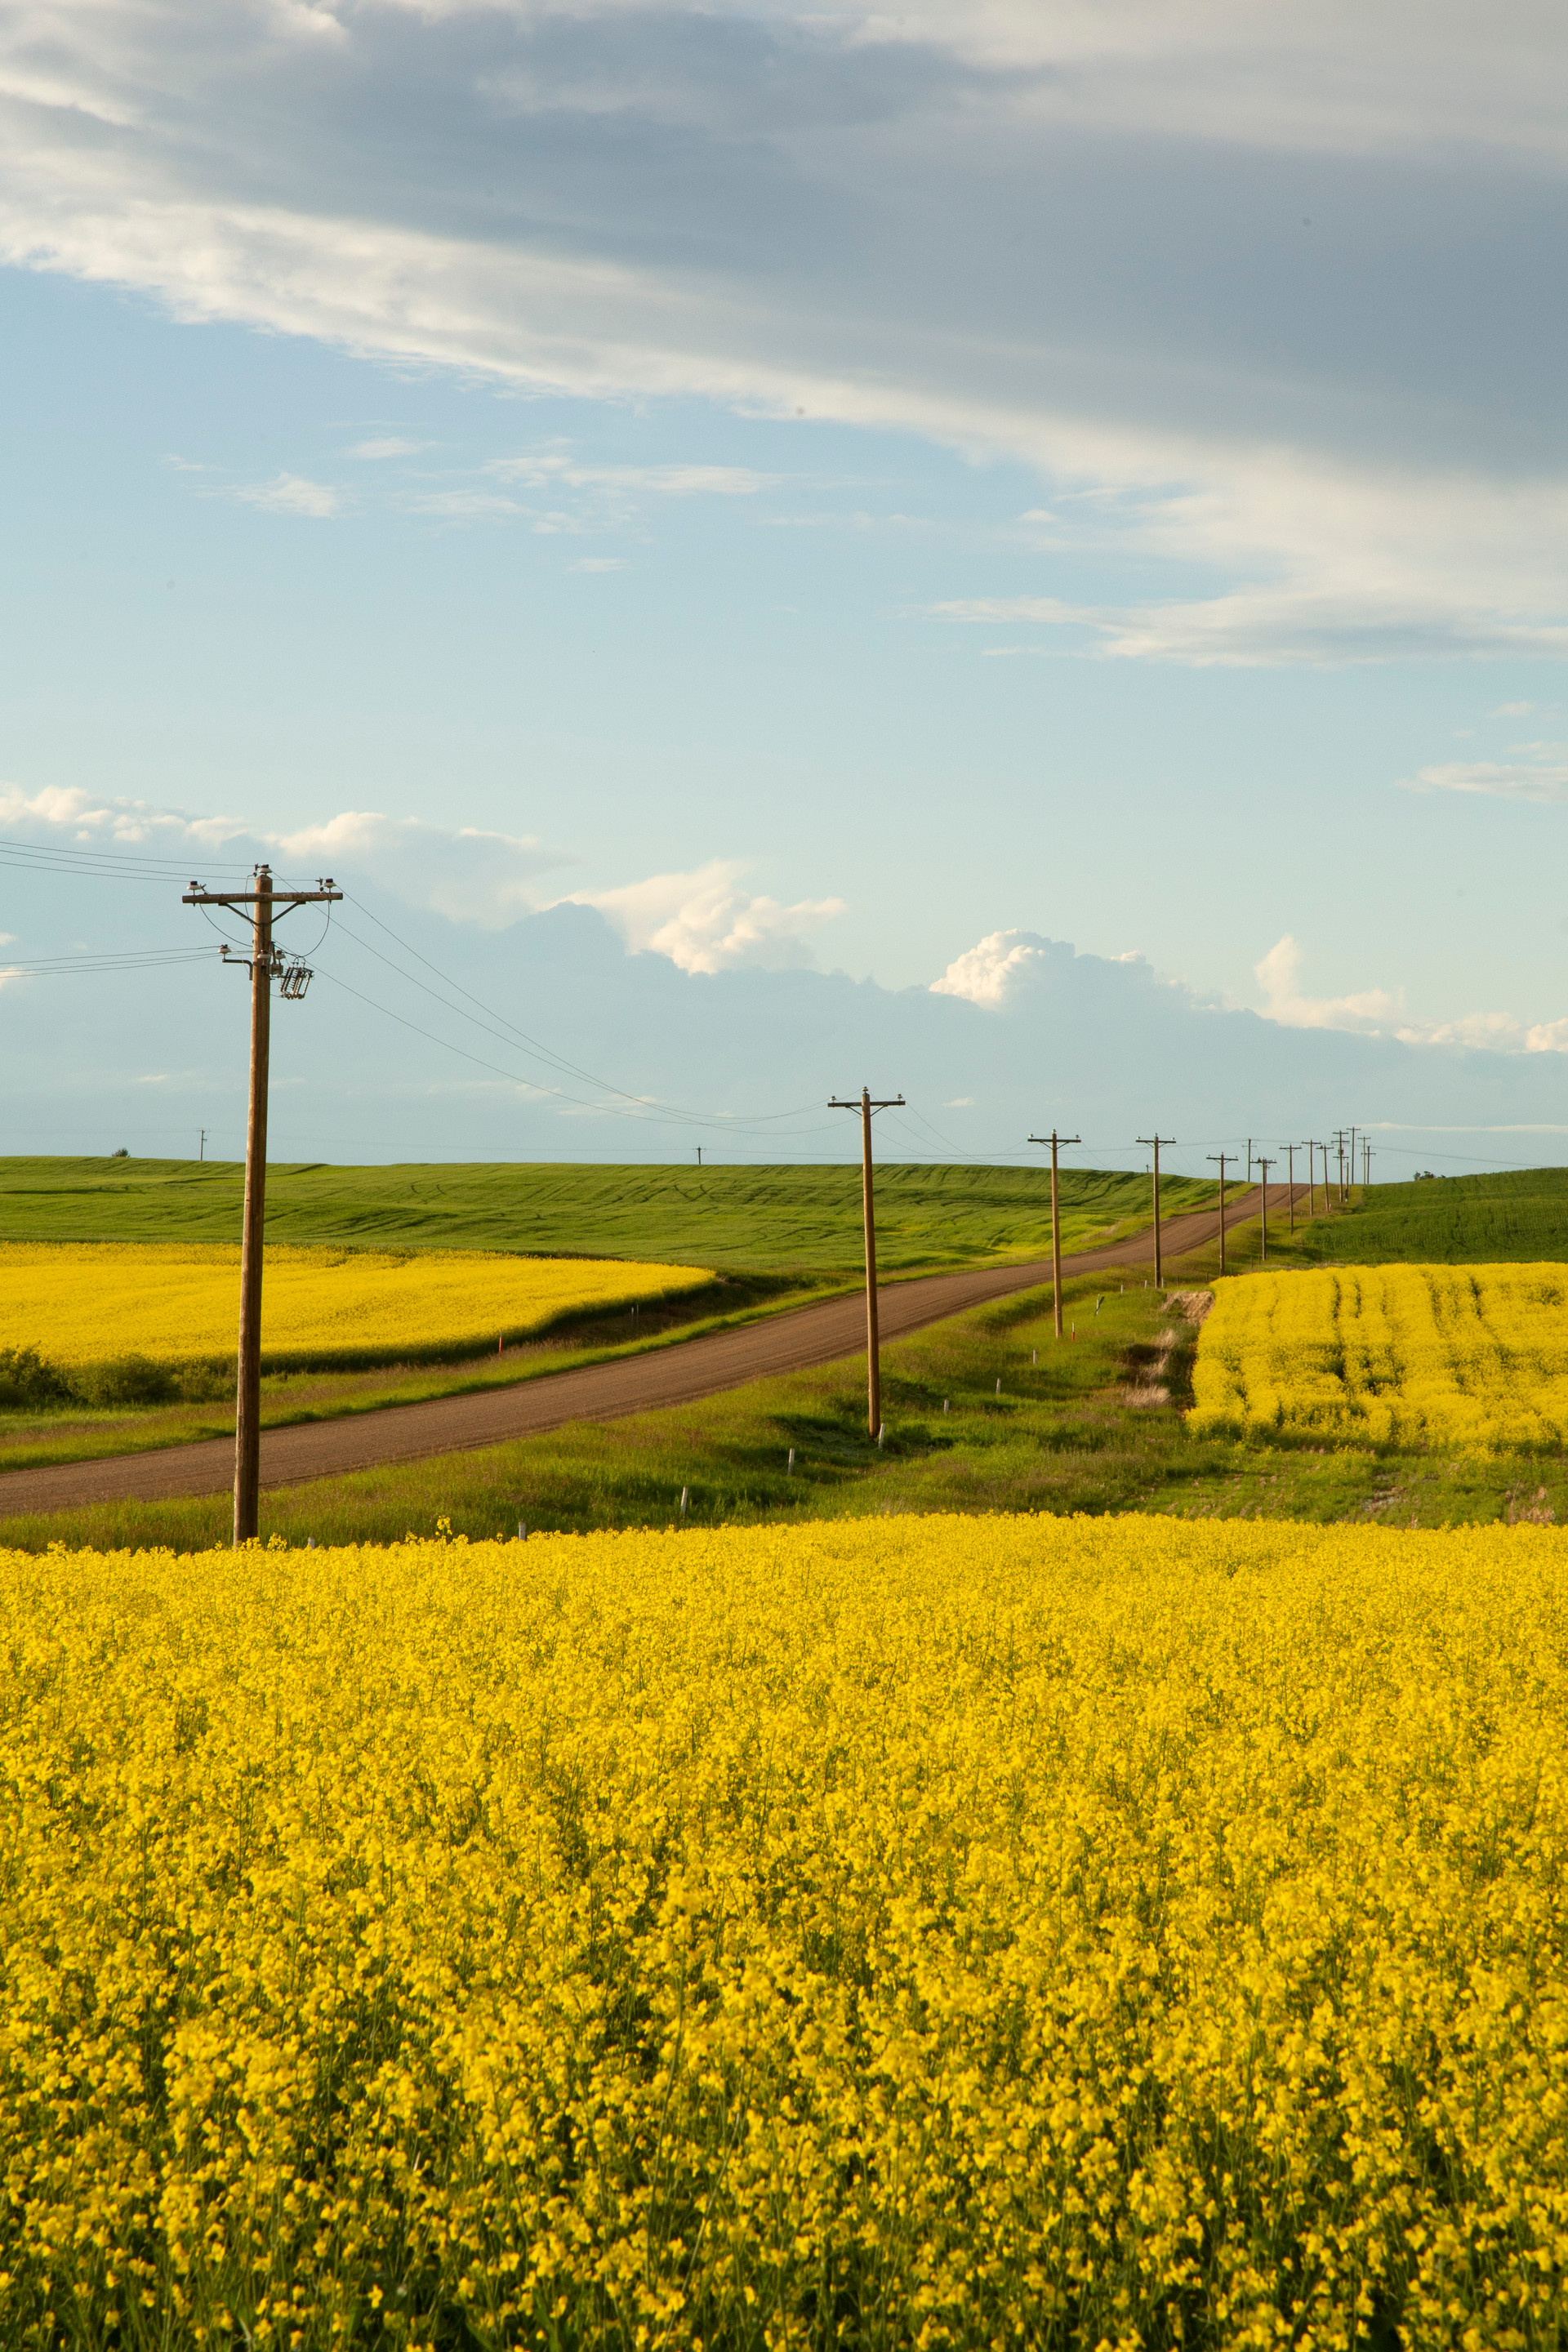 Alberta in the Summertime